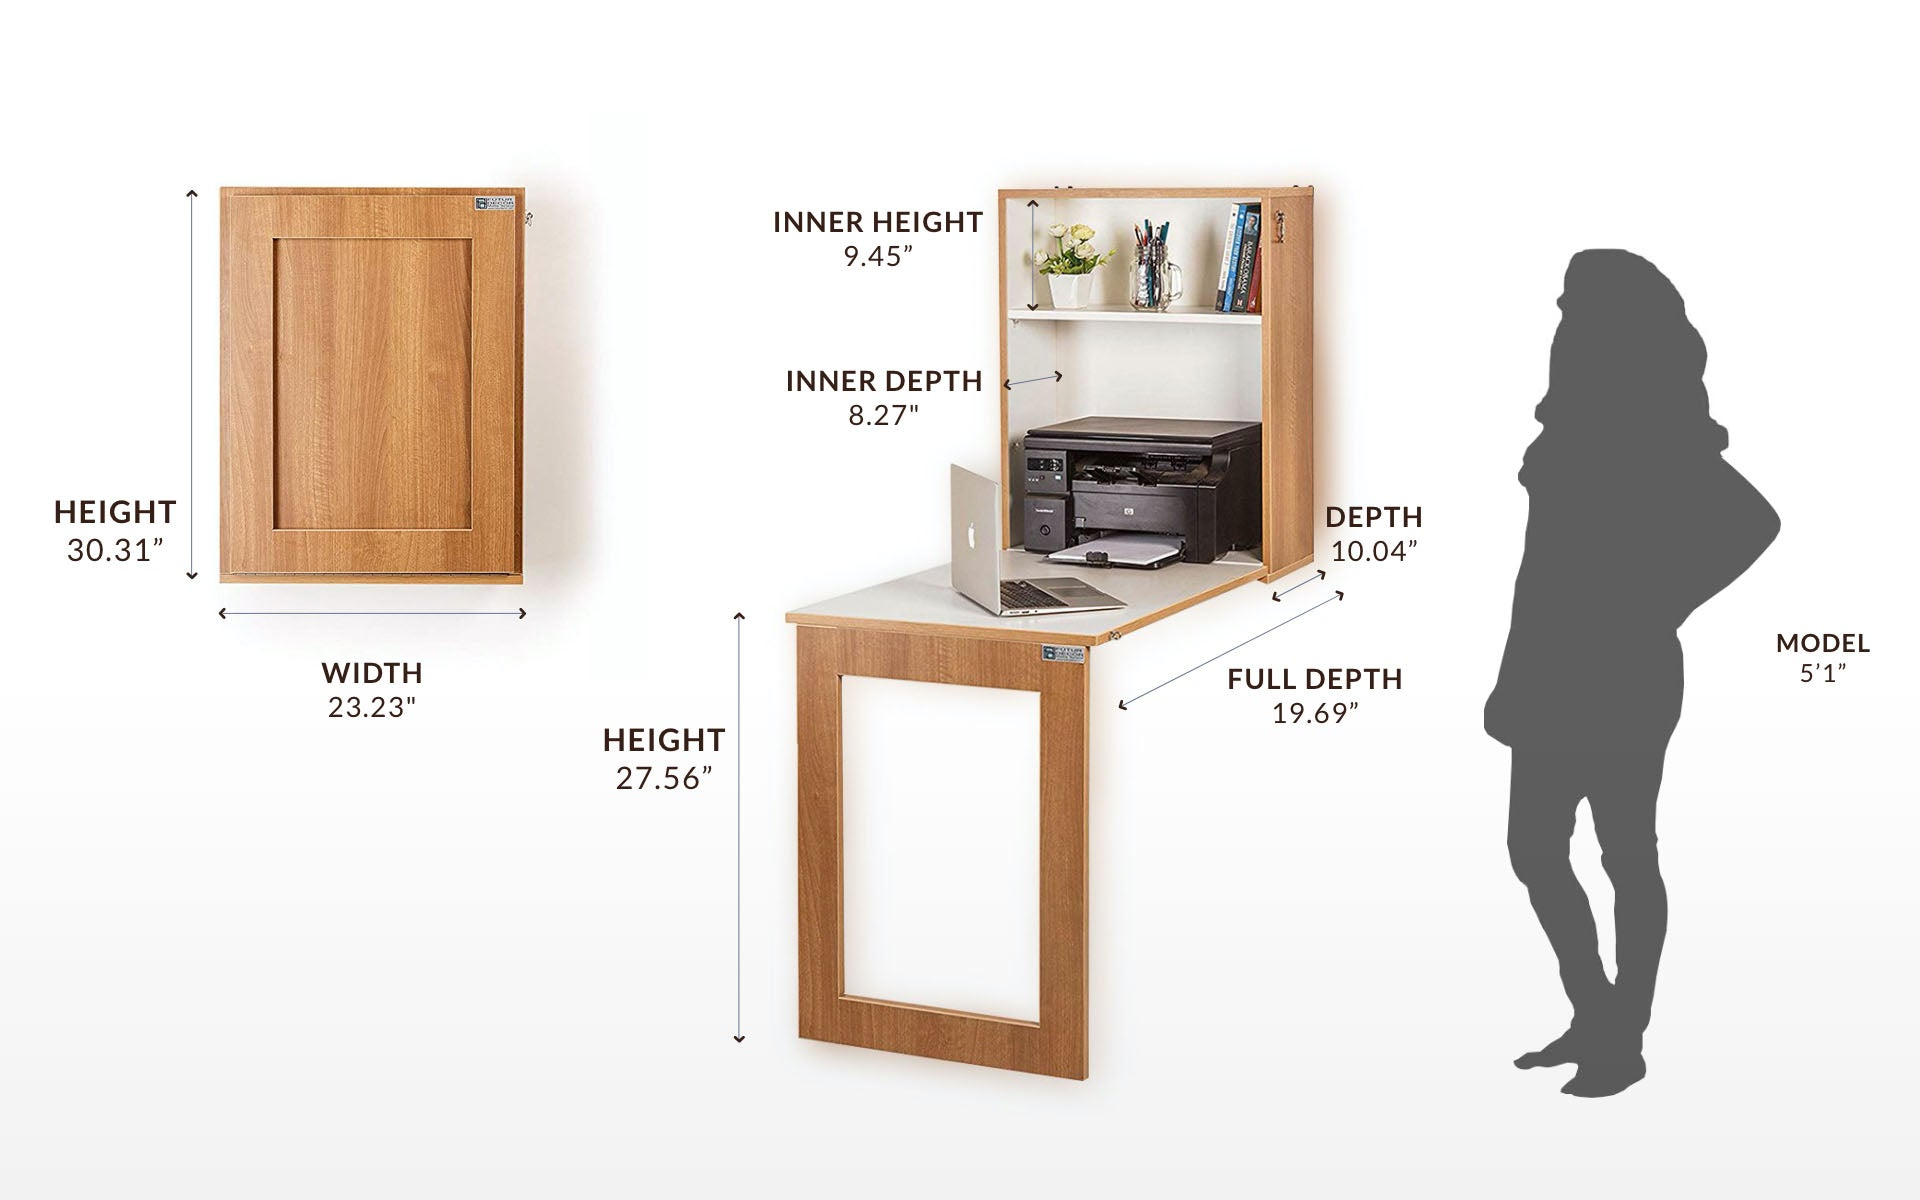 iTable Wall Mounted for Study, Office, Kitchen, Extendable table